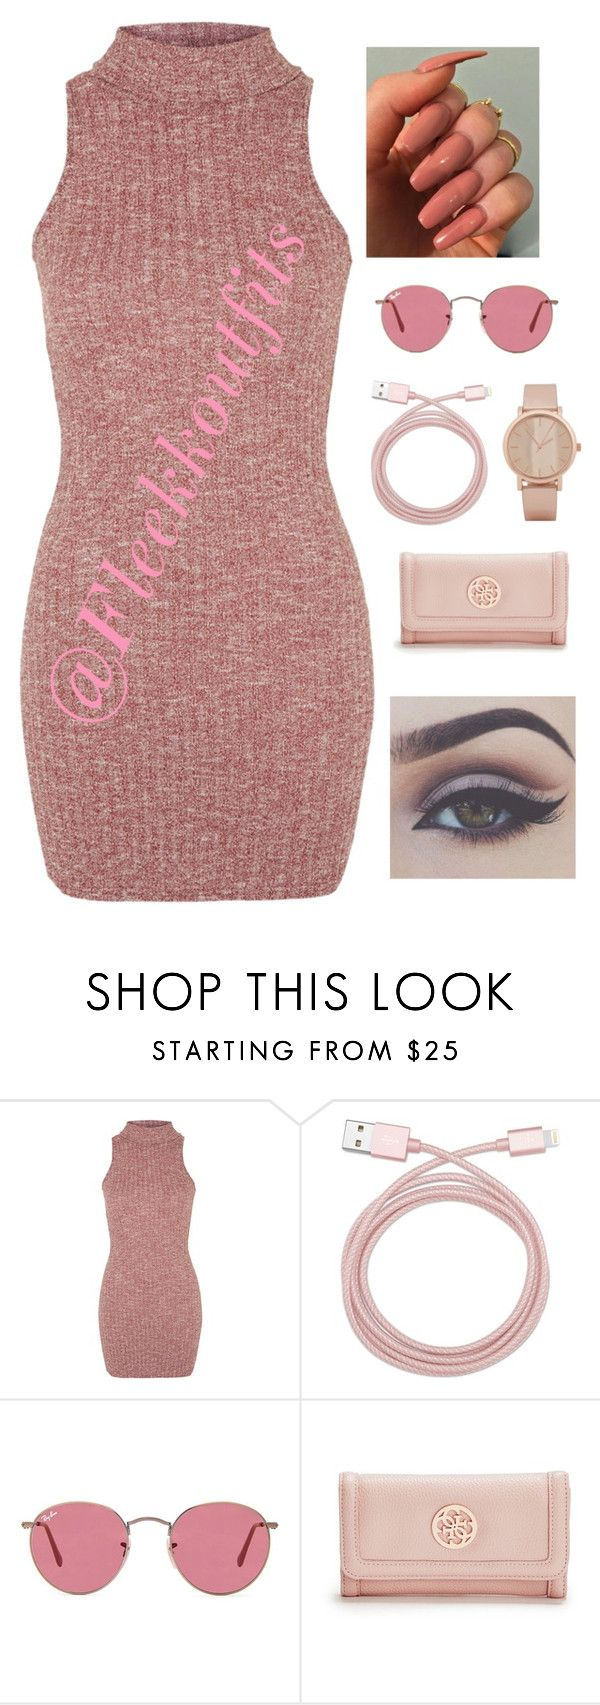 """""""Summer 16' """" by barbiedatrillest ❤ liked on Polyvore featuring Topshop, Belkin, Ray-Ban, GUESS, ALDO and Bellezza"""